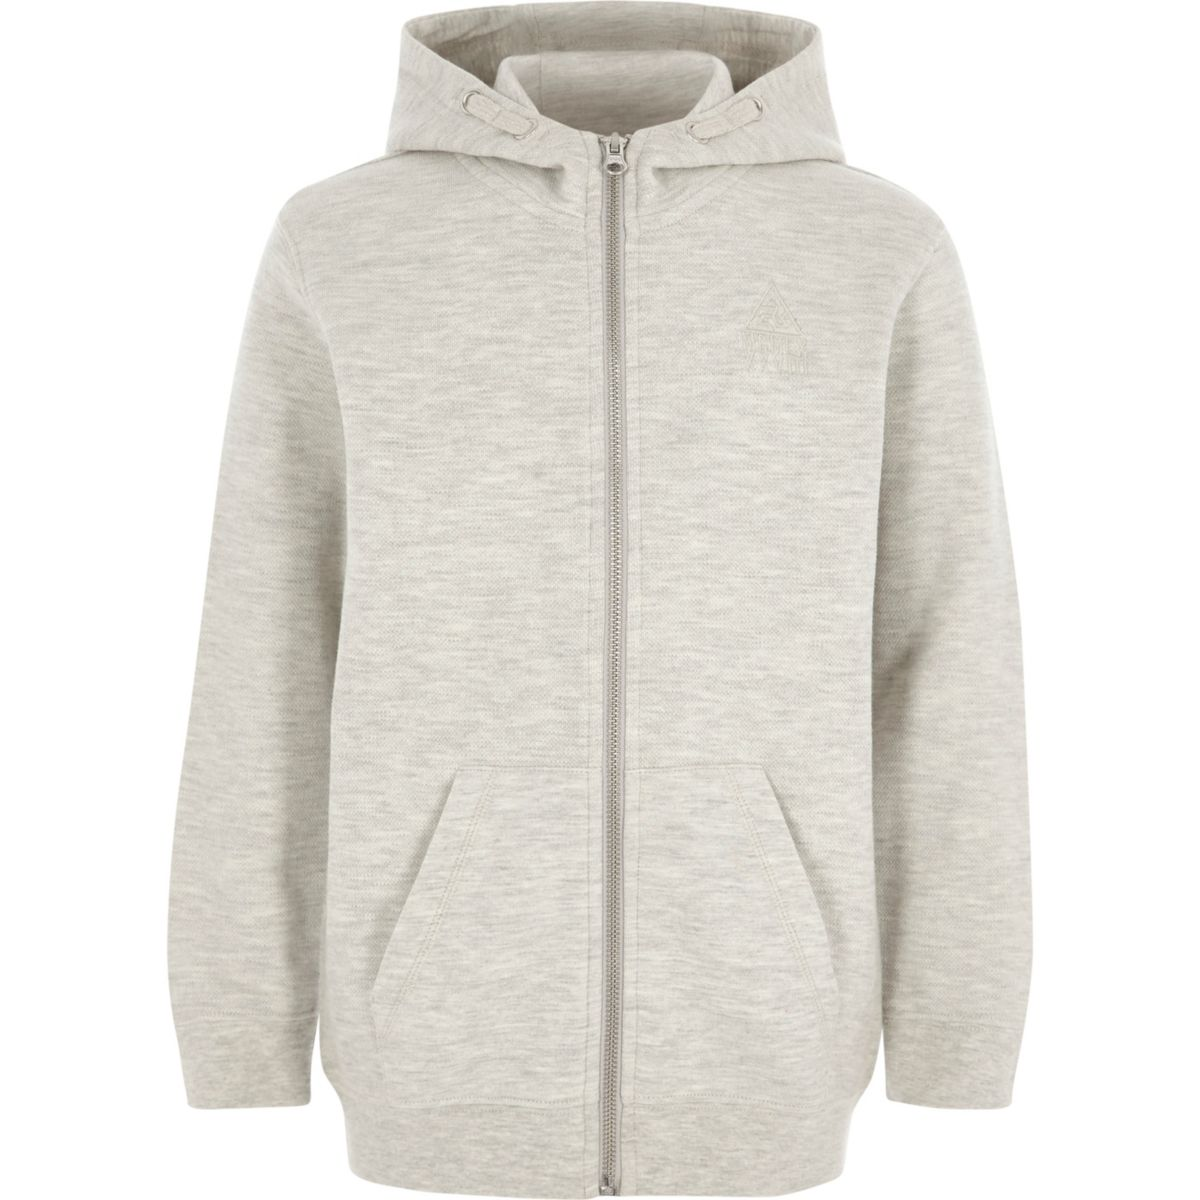 Boys grey zip-up pique tracksuit hoodie